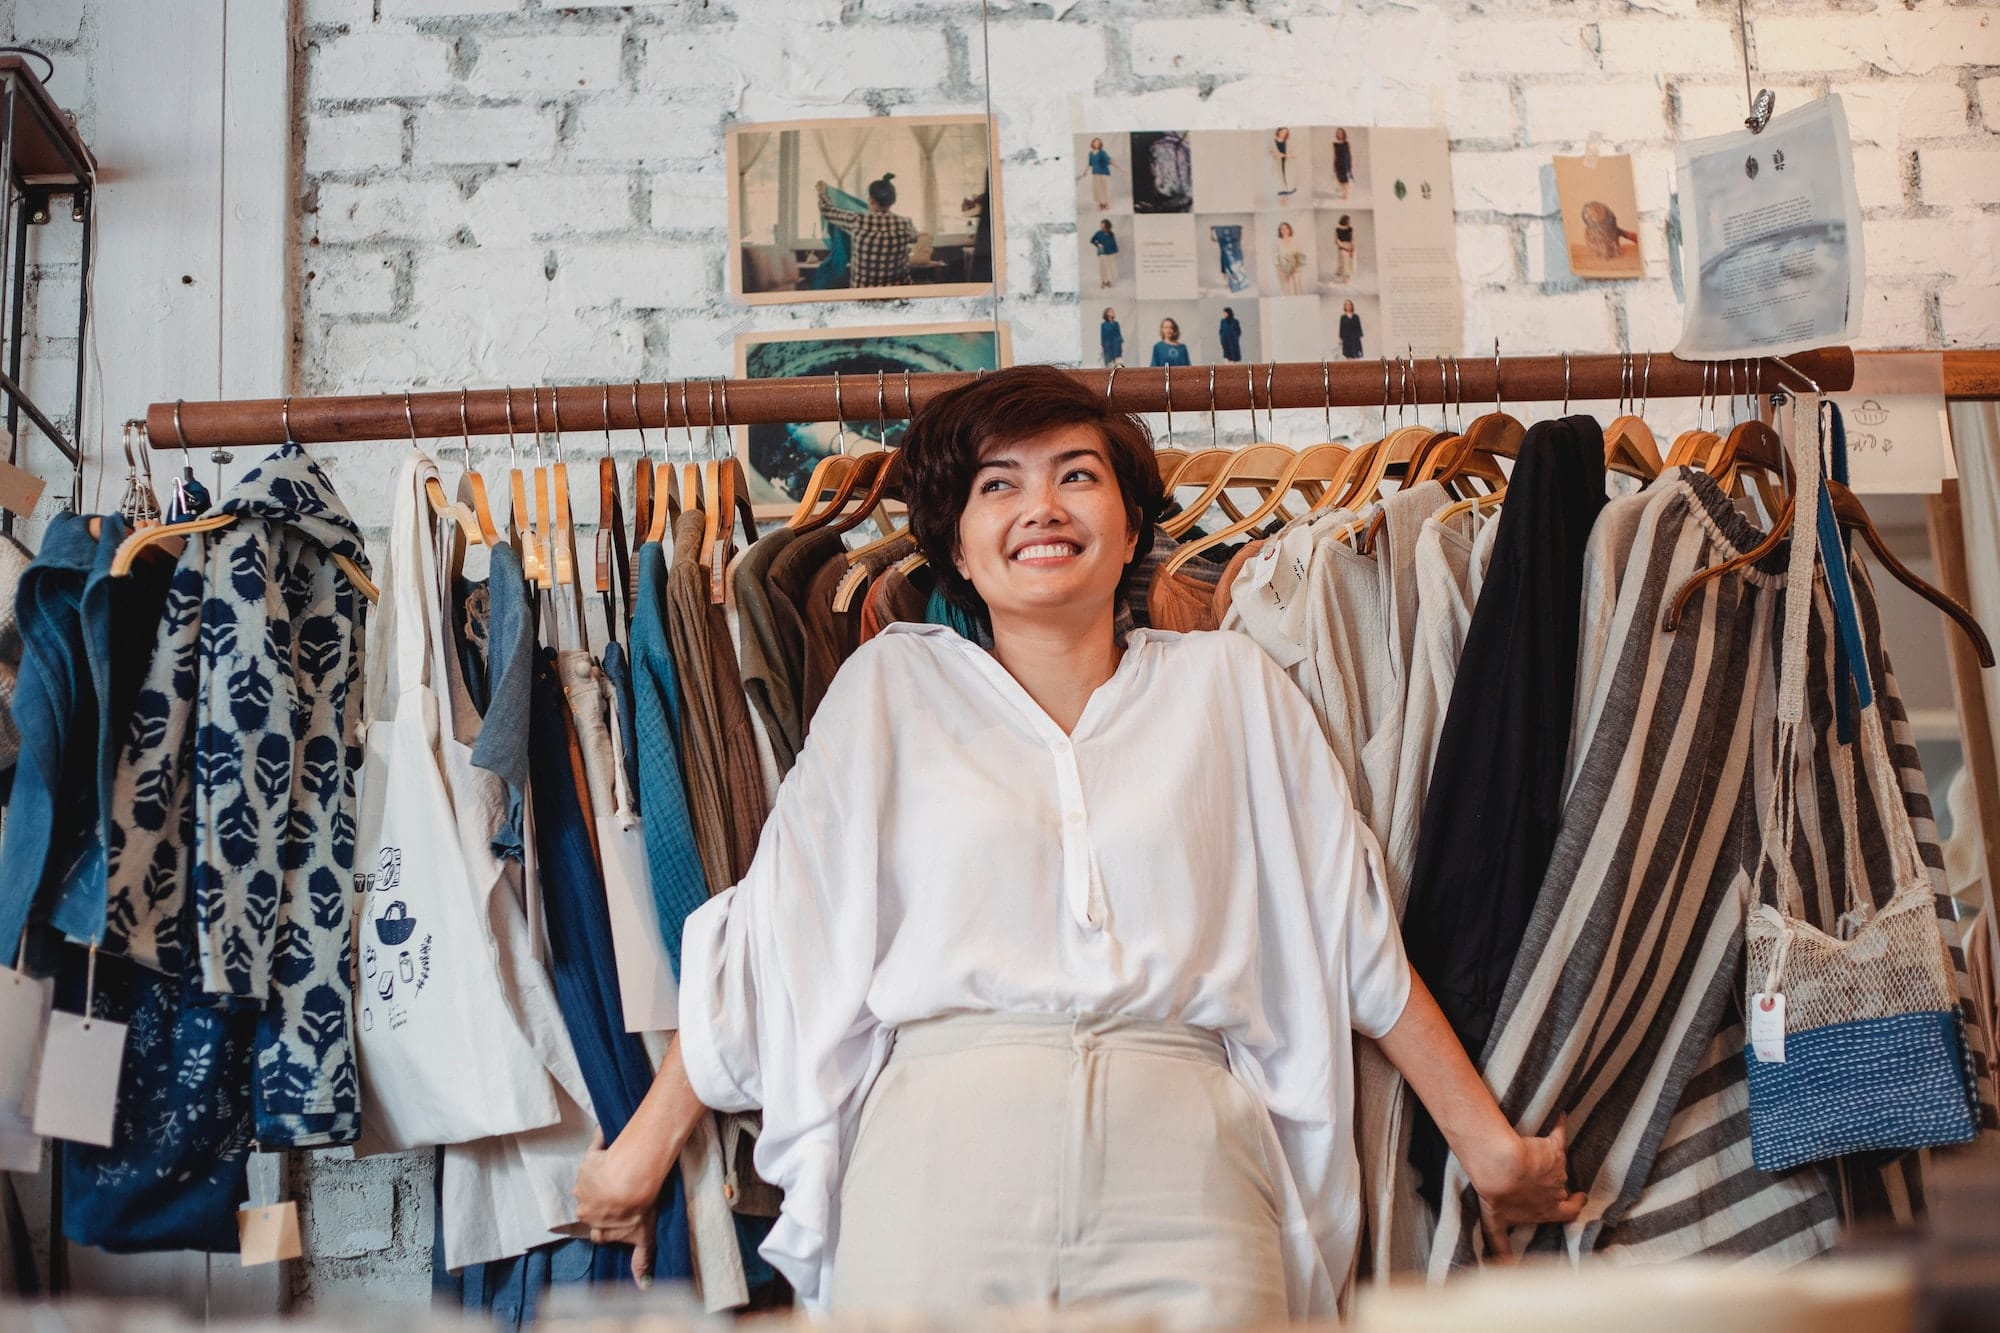 Happy woman standing in front of clothes